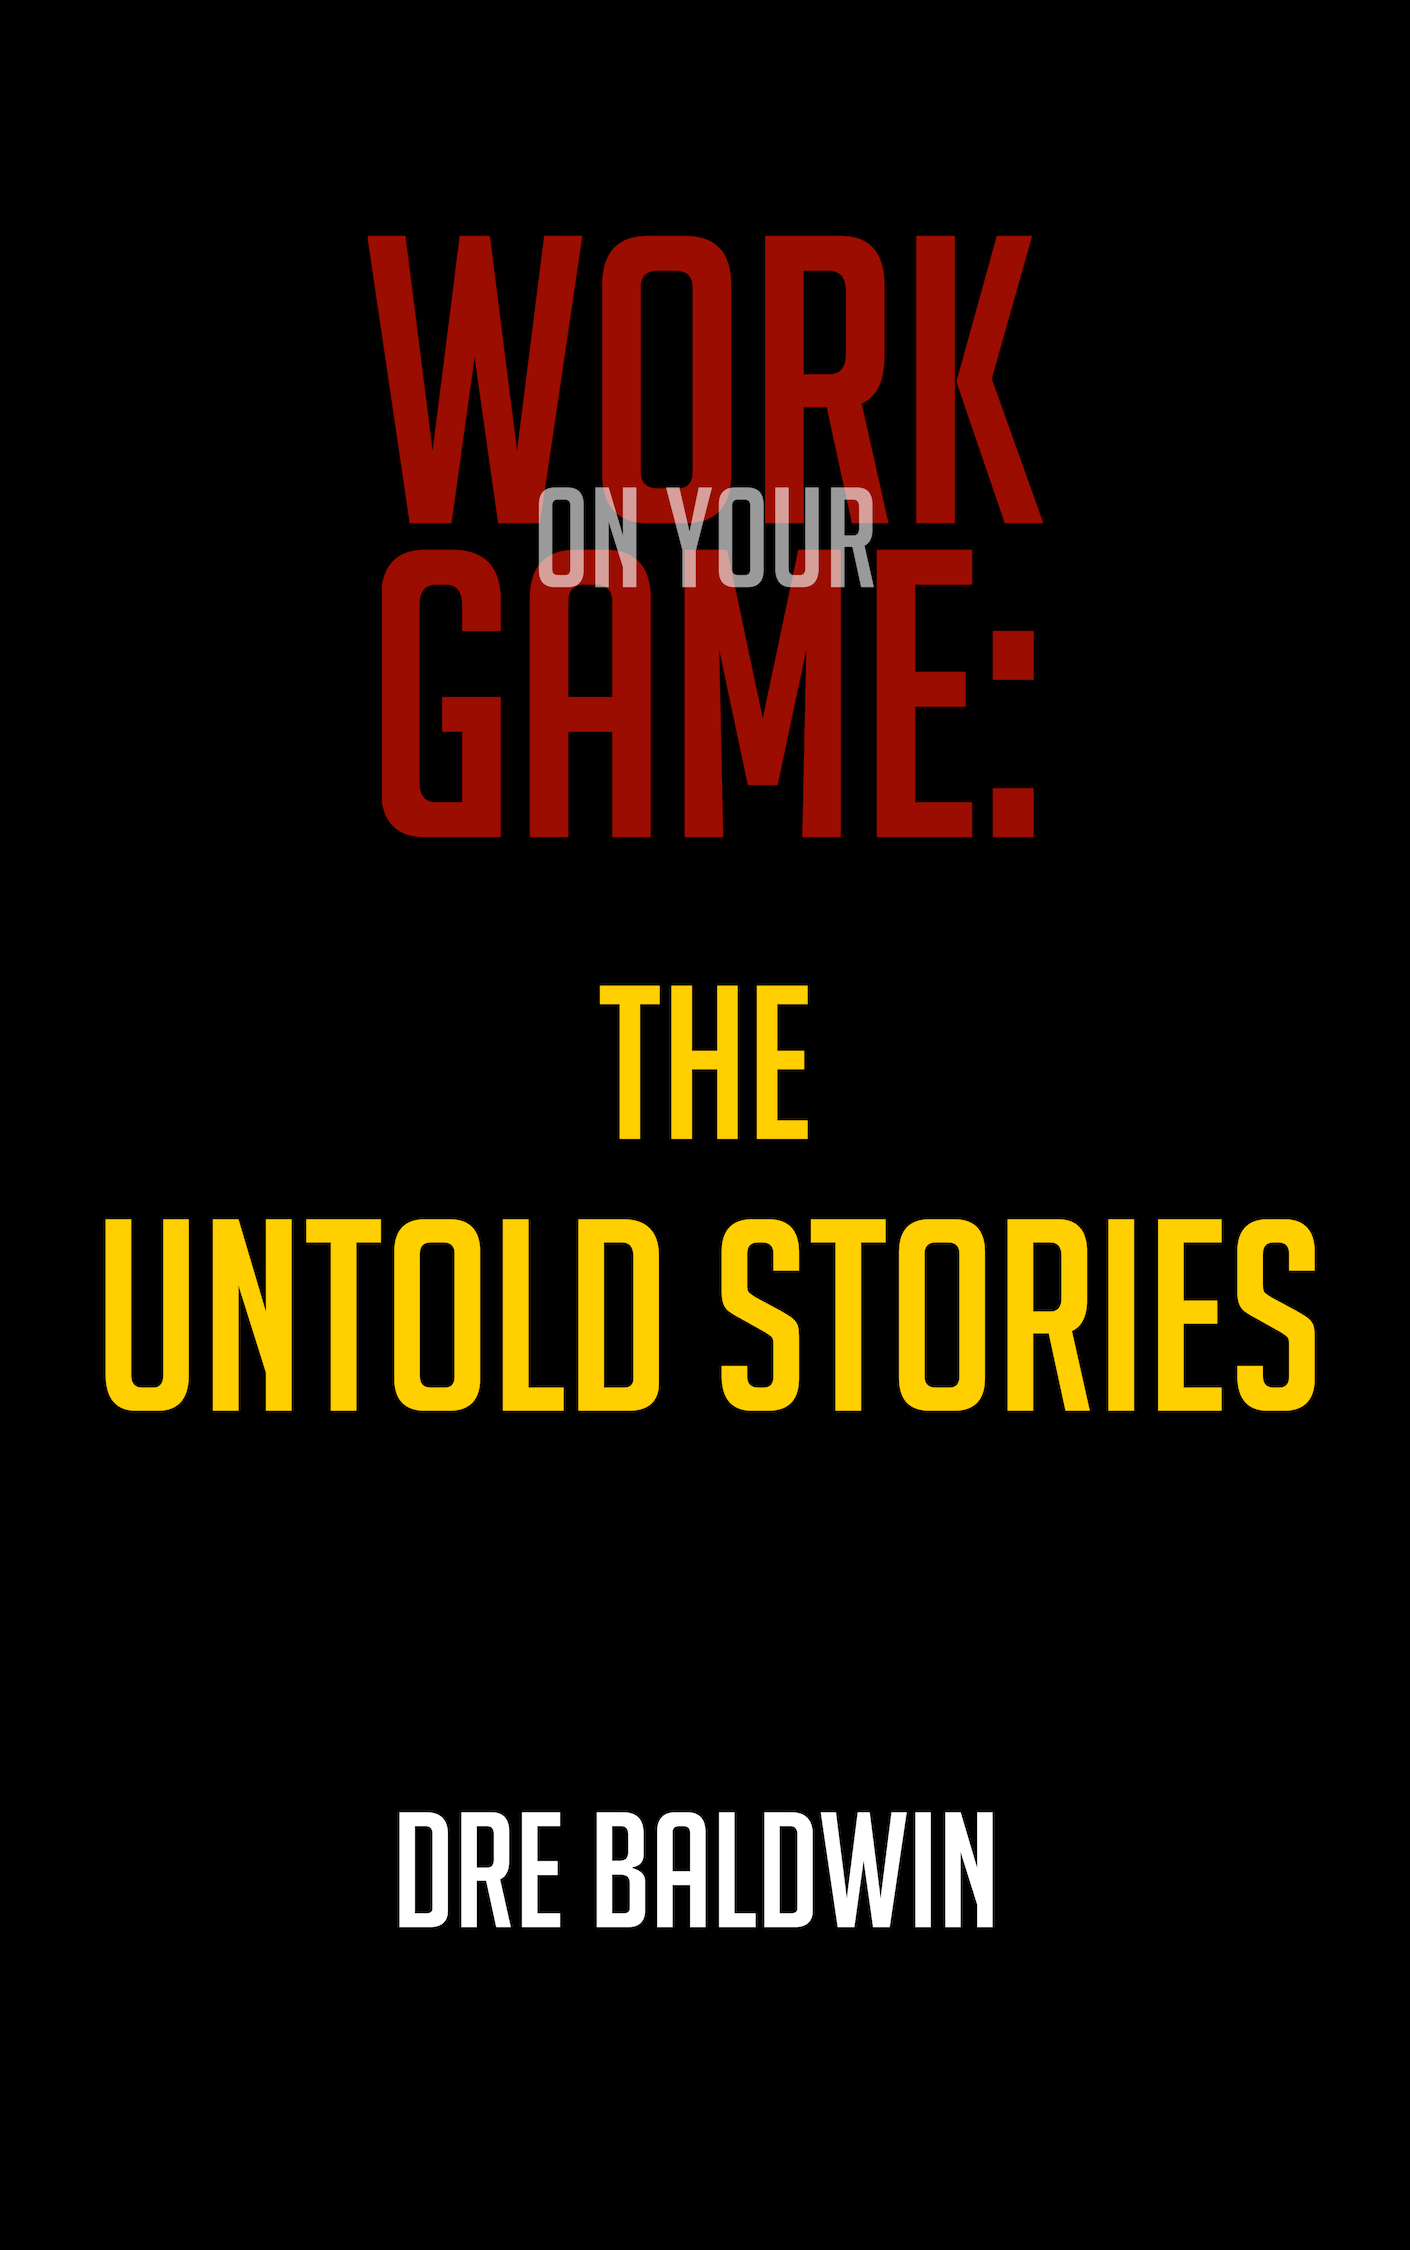 Work On Your Game The Lost Stories Cover Dre Baldwin DreAllDay.com